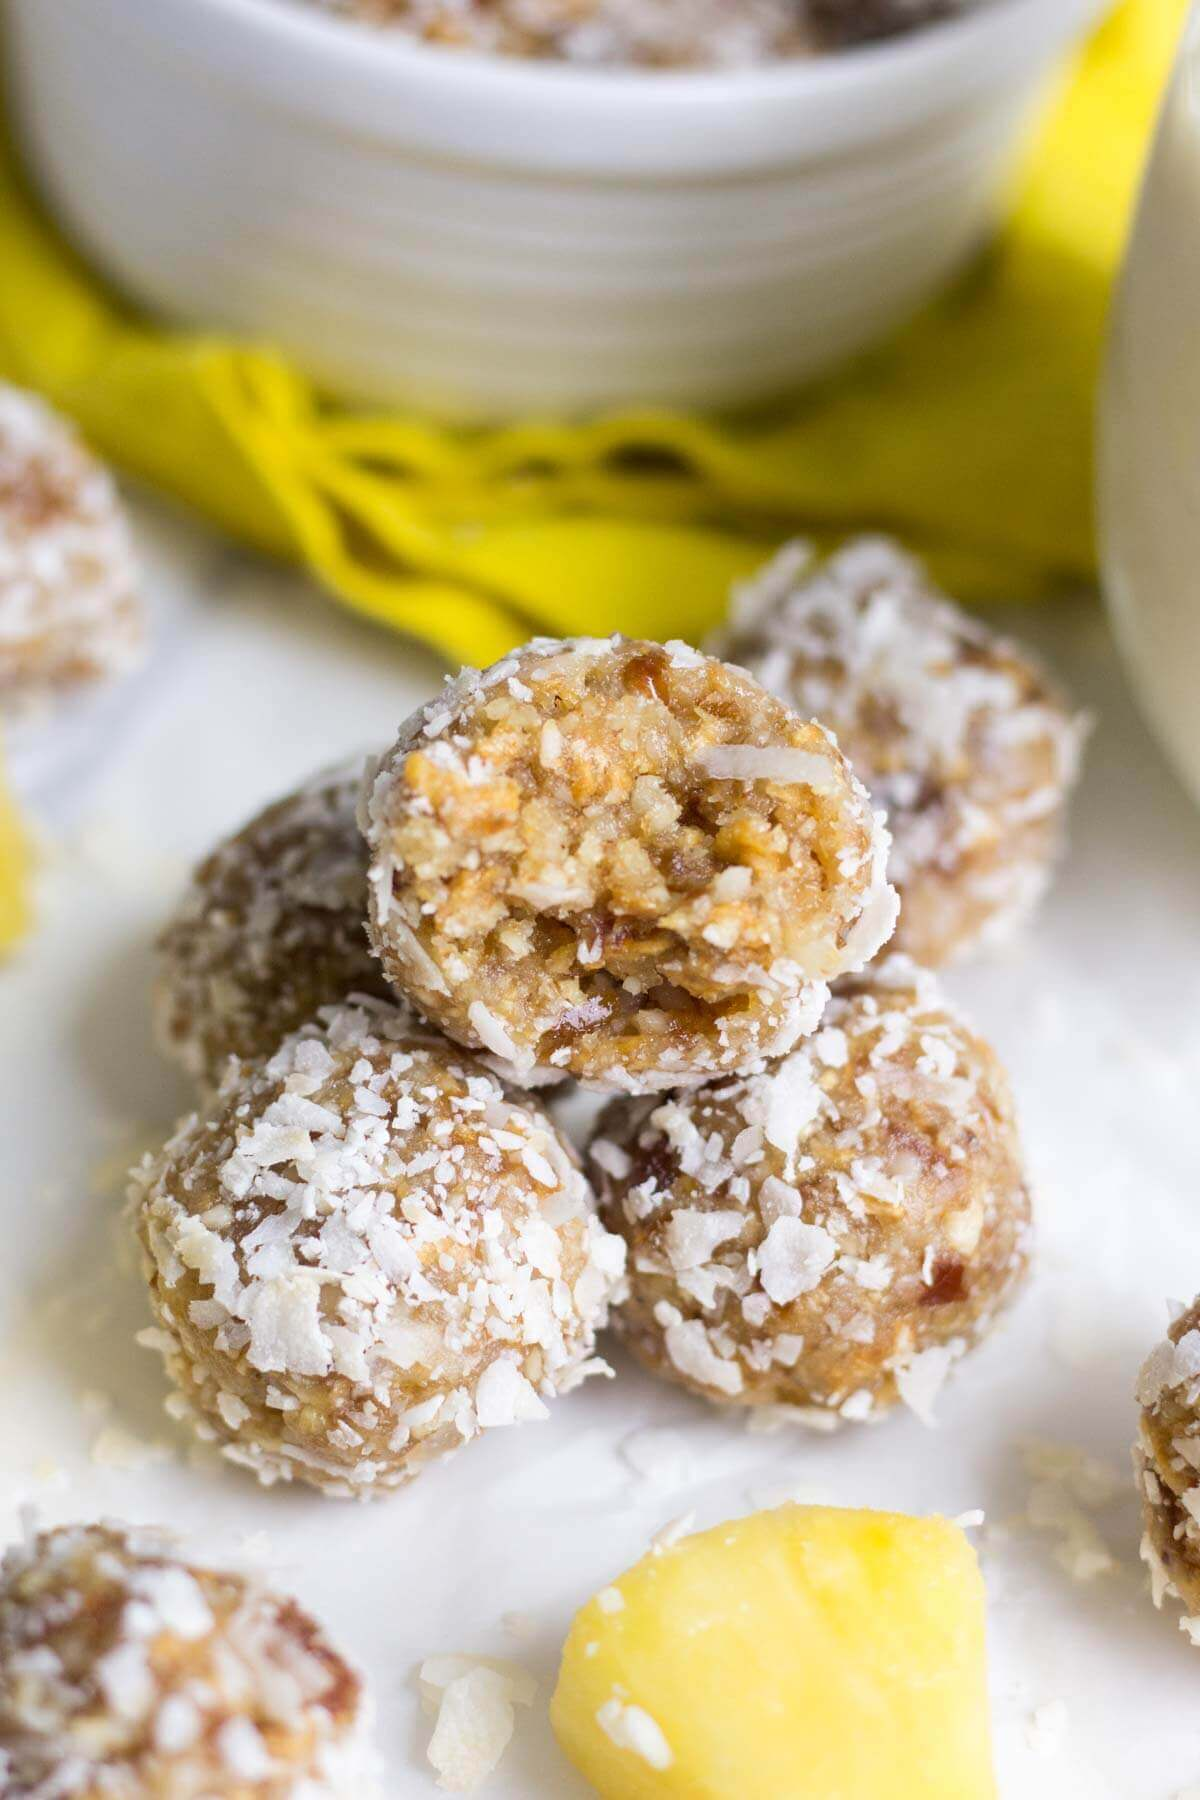 Healthy and filled with energizing ingredients, these pina colada energy bites are a sweet and healthy snack that will keep you satisfied all day. It's made with raw ingredients like cashews and macadamia nuts, plus dried fruit and coconut. This energy bite recipe will transport you to the beach!